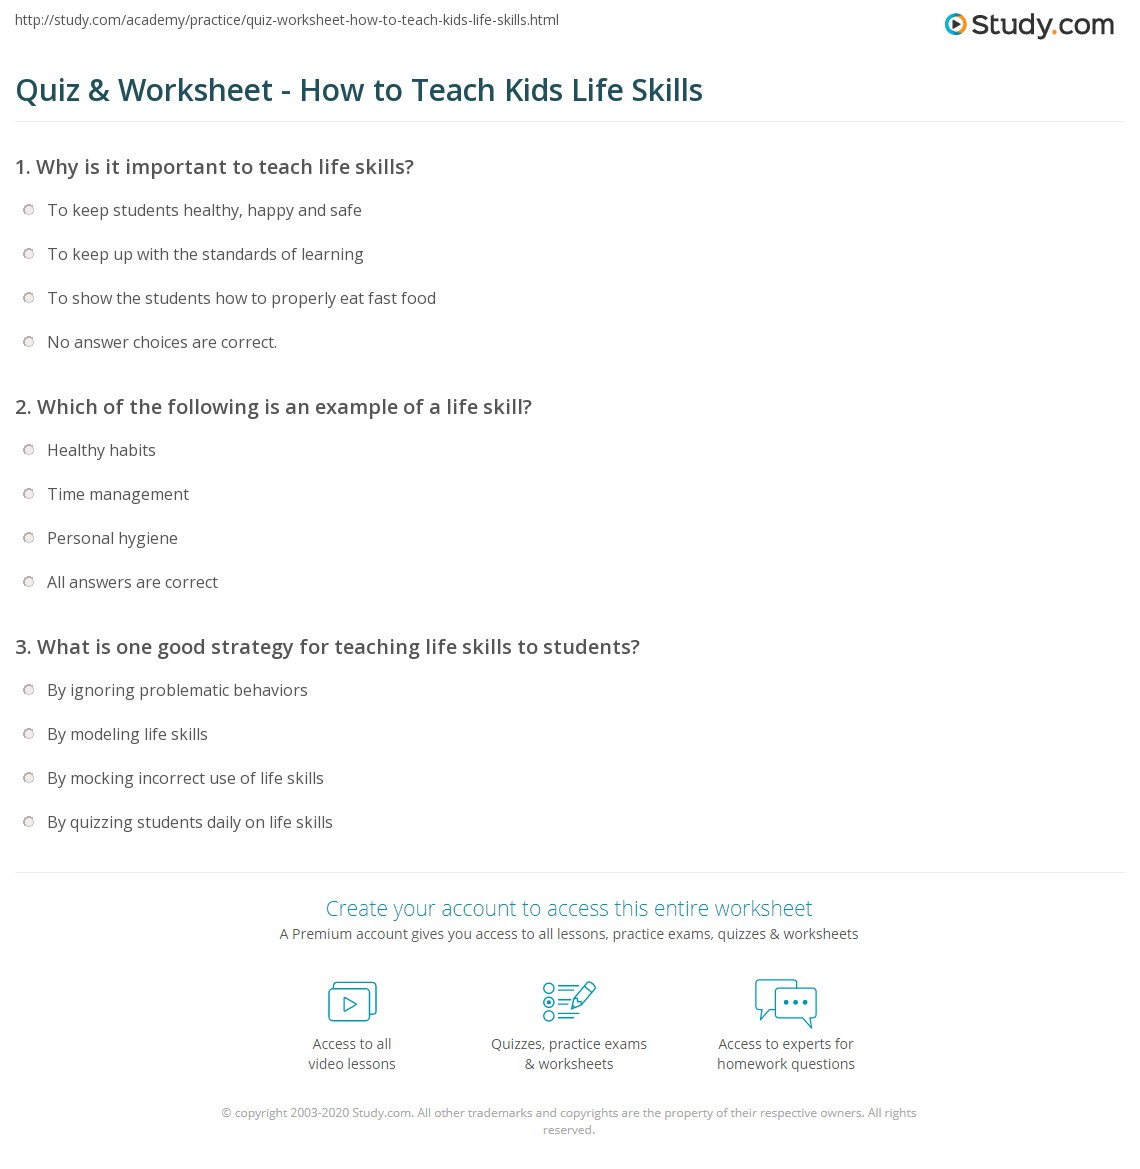 Free Worksheet Life Management Skills Worksheets quiz worksheet how to teach kids life skills study com print teaching children worksheet